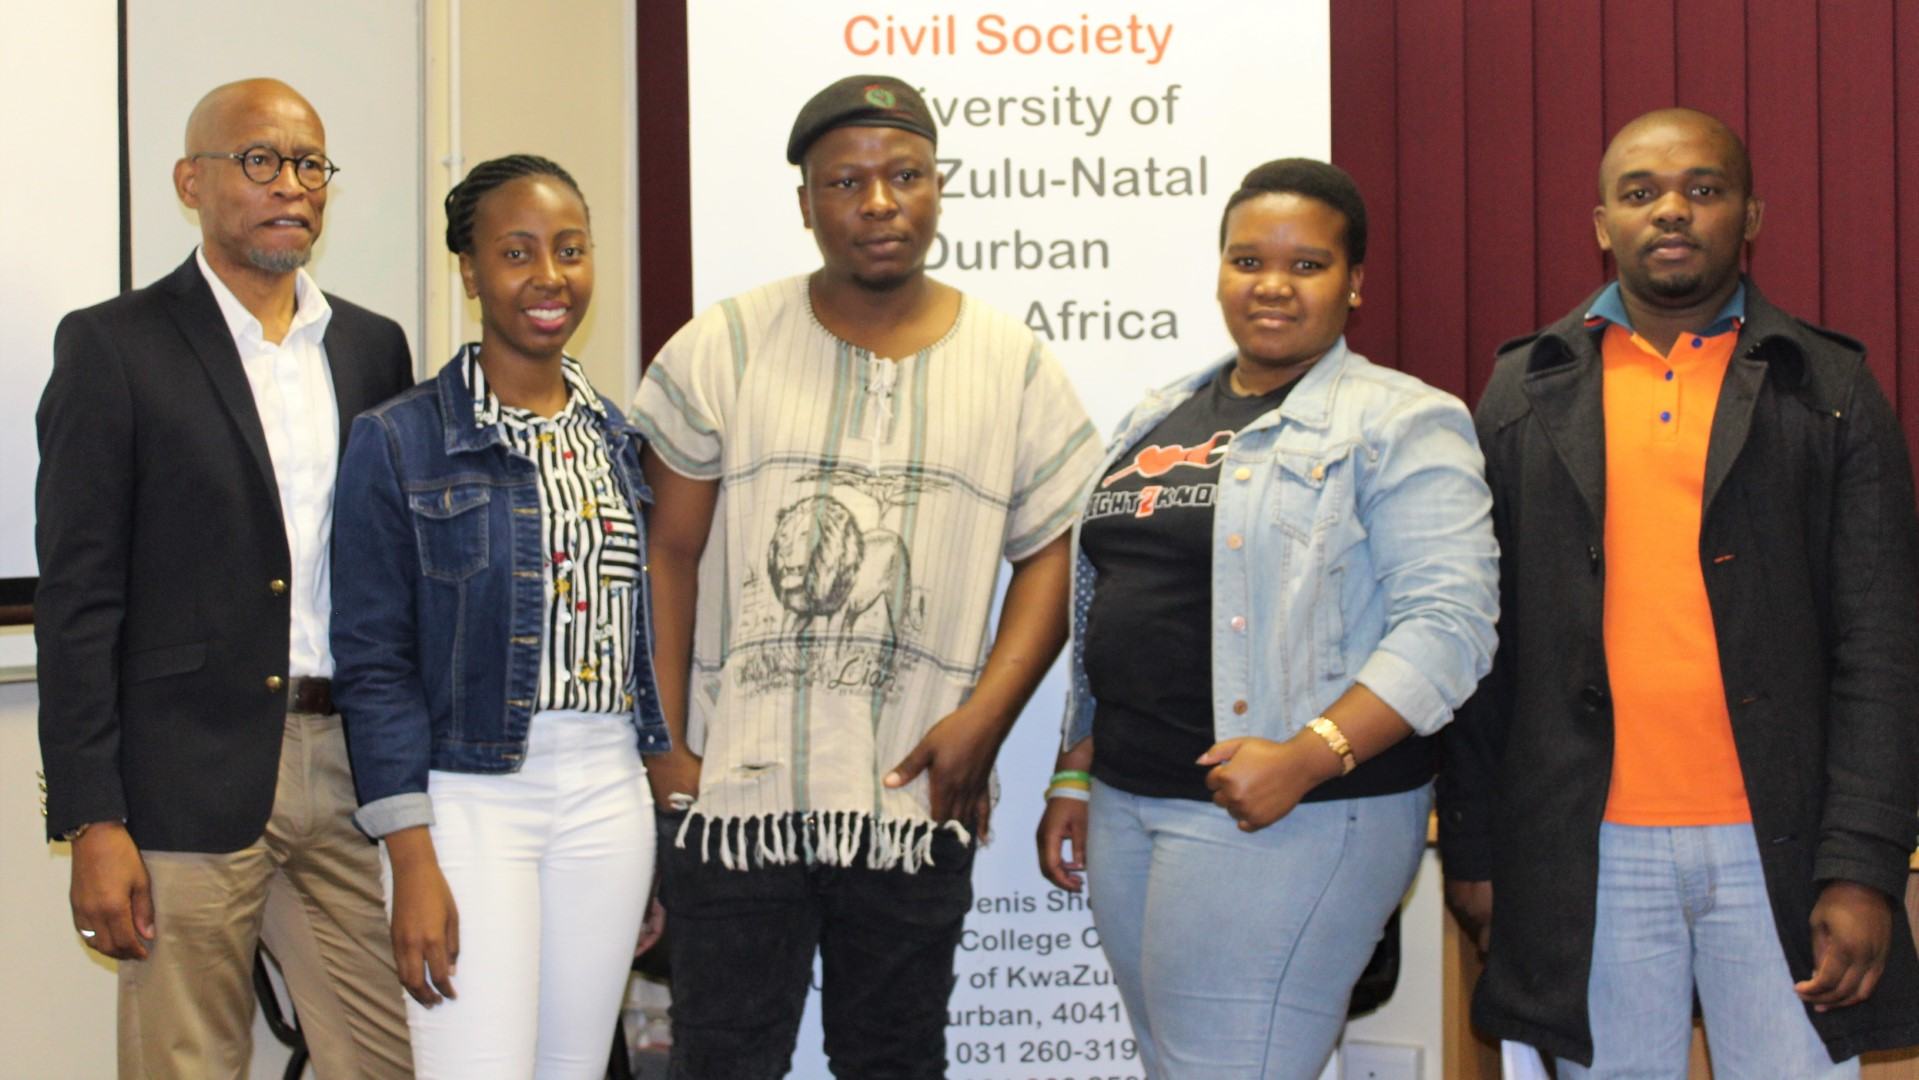 Speakers at the CCS Young Civil Society event are from left: Dr Koyi Mchunu, Ms Lerato Malope, Mr Thobani Zikalala, Ms Philisiwe Mazibuko and Mr Nduduzo Majozi.